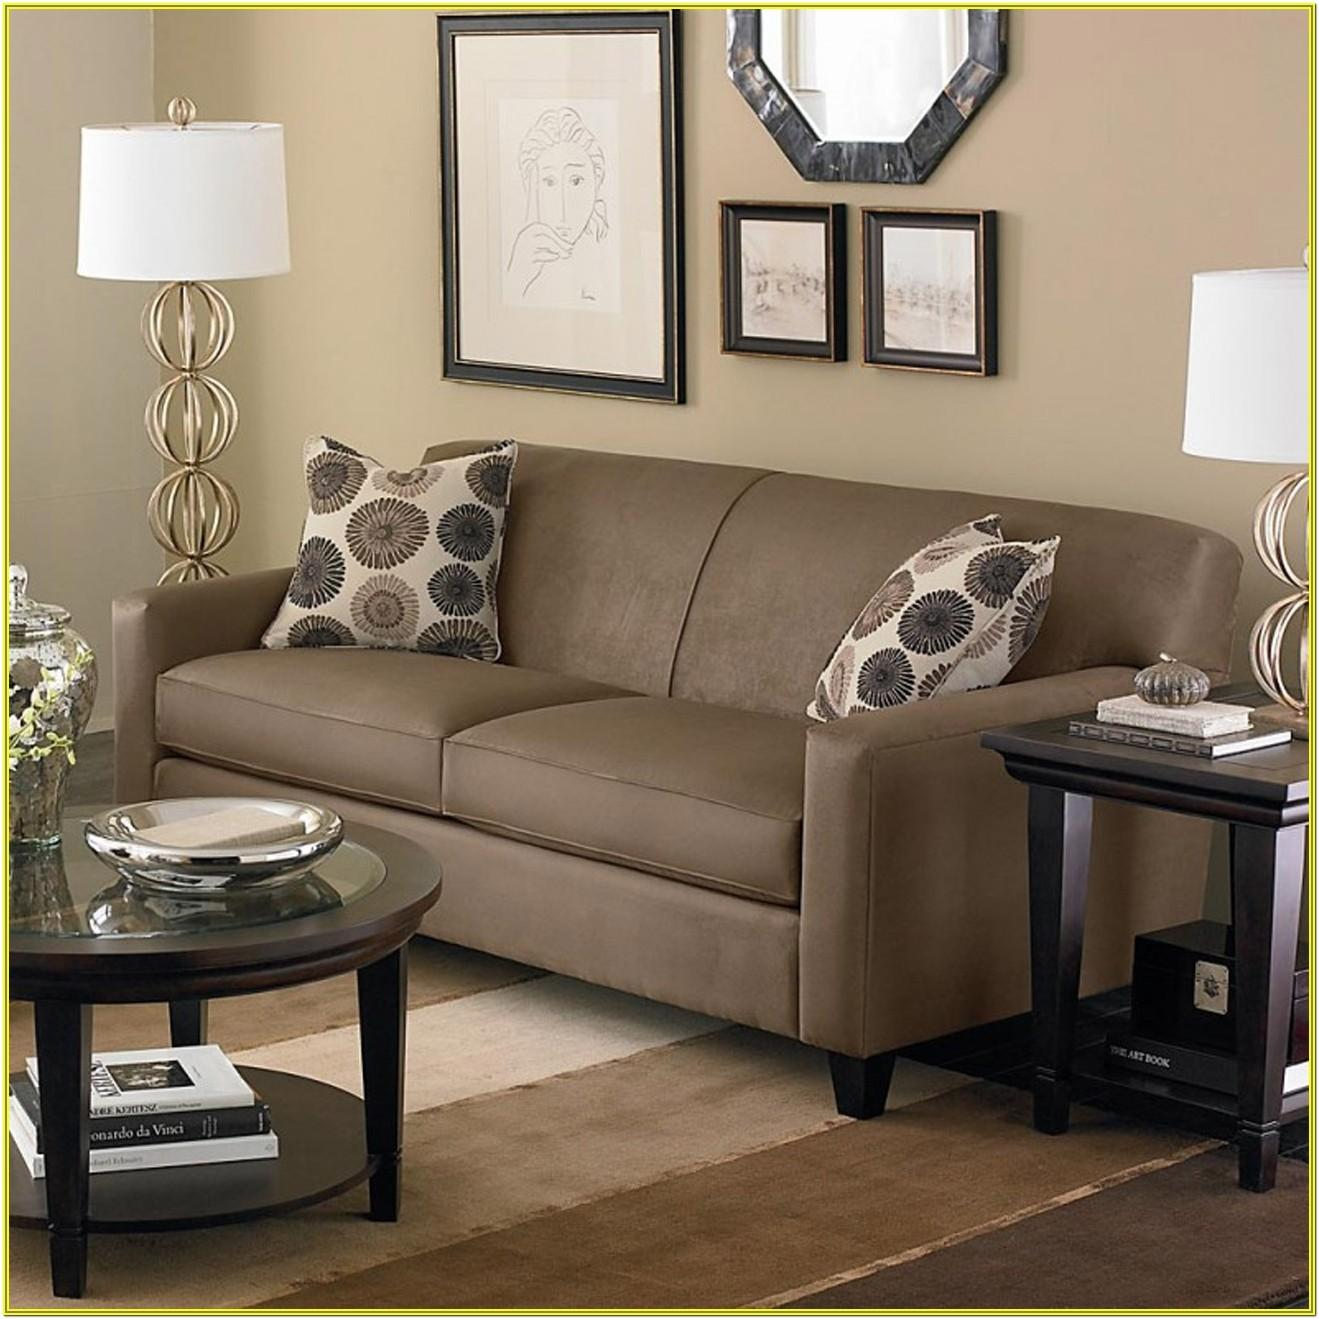 Living Room Decorating Ideas With Sectional Sofas